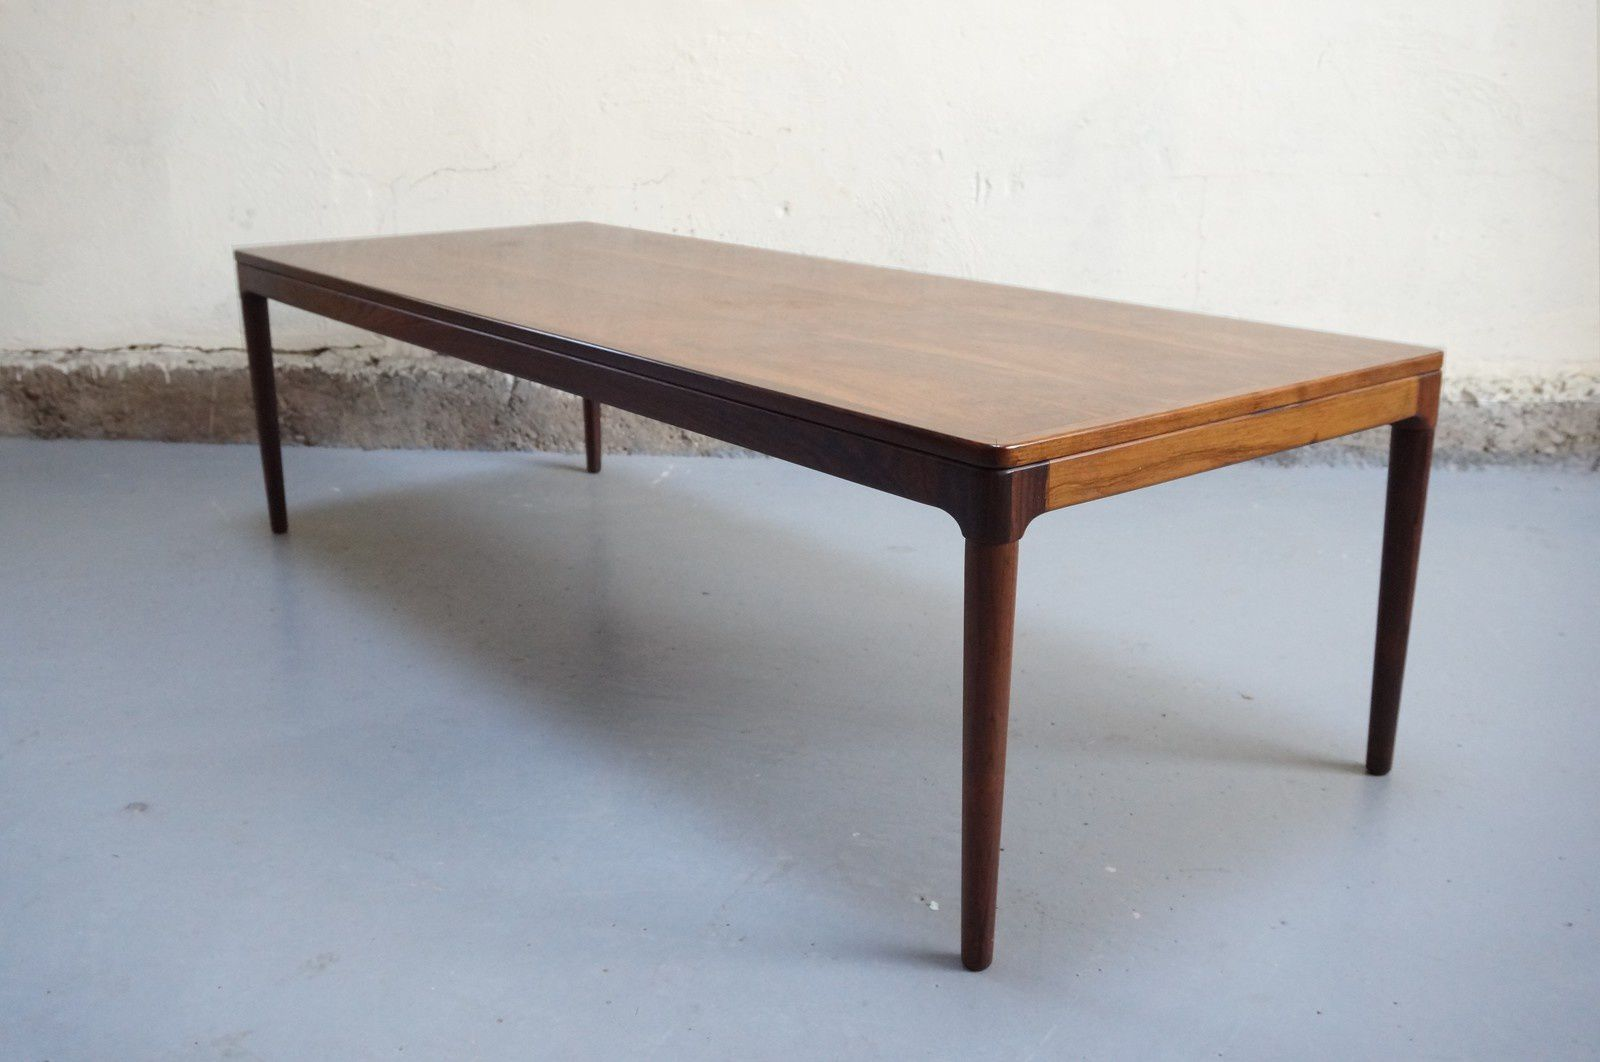 Grande Table Scandinave Table Basse Scandinave Palissandre De Rio Salon Design Années 60